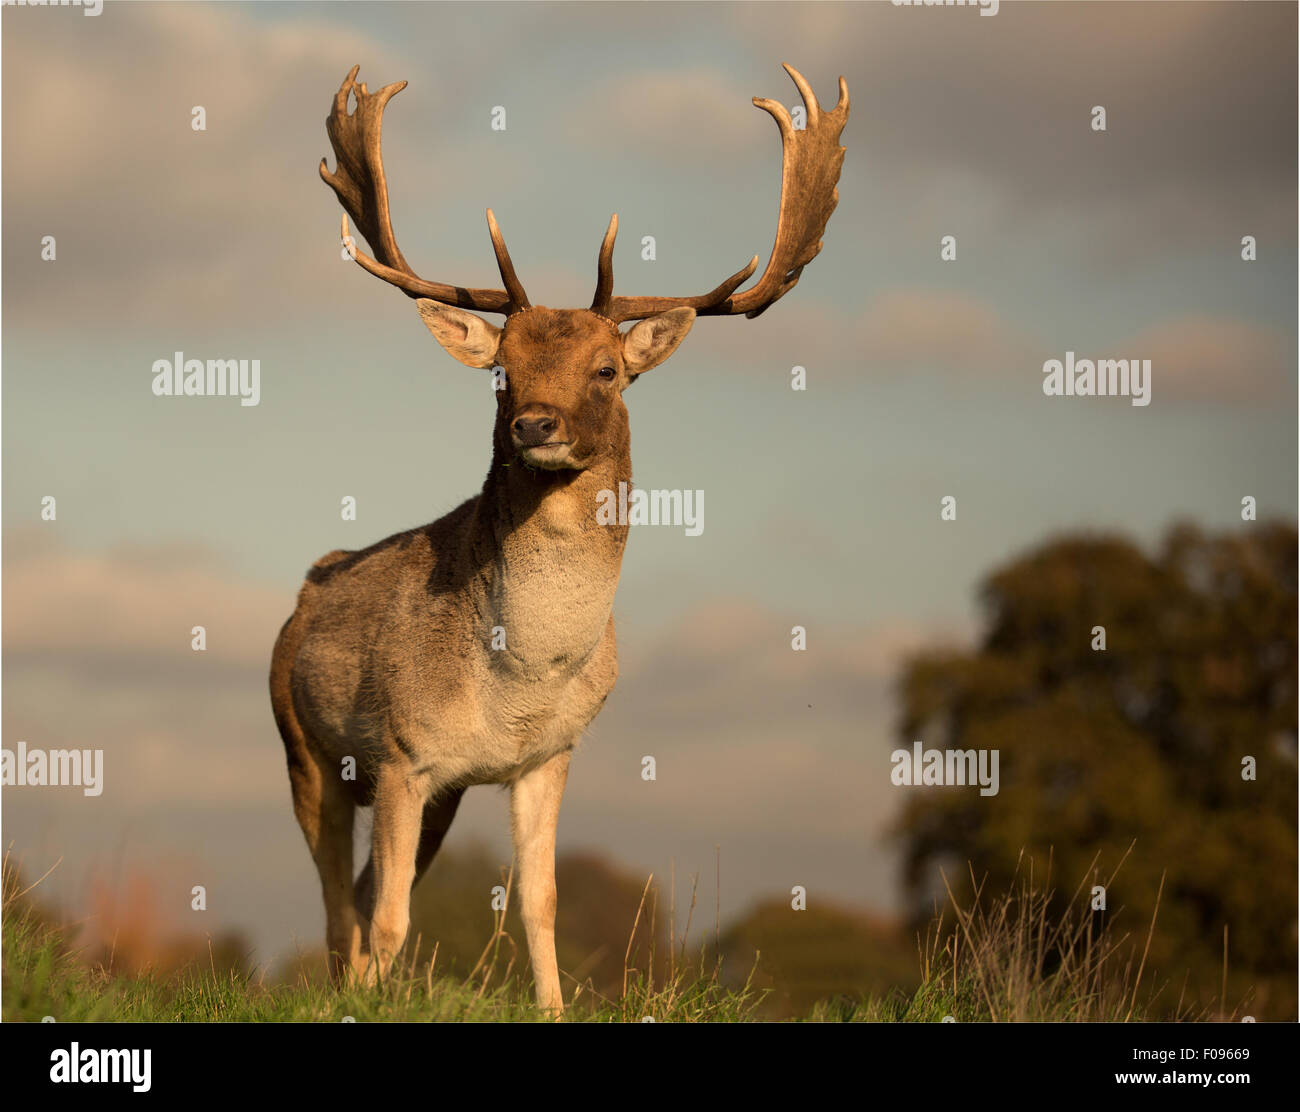 King Of The Hill Regal Proud And Powerful This Fallow Deer Buck